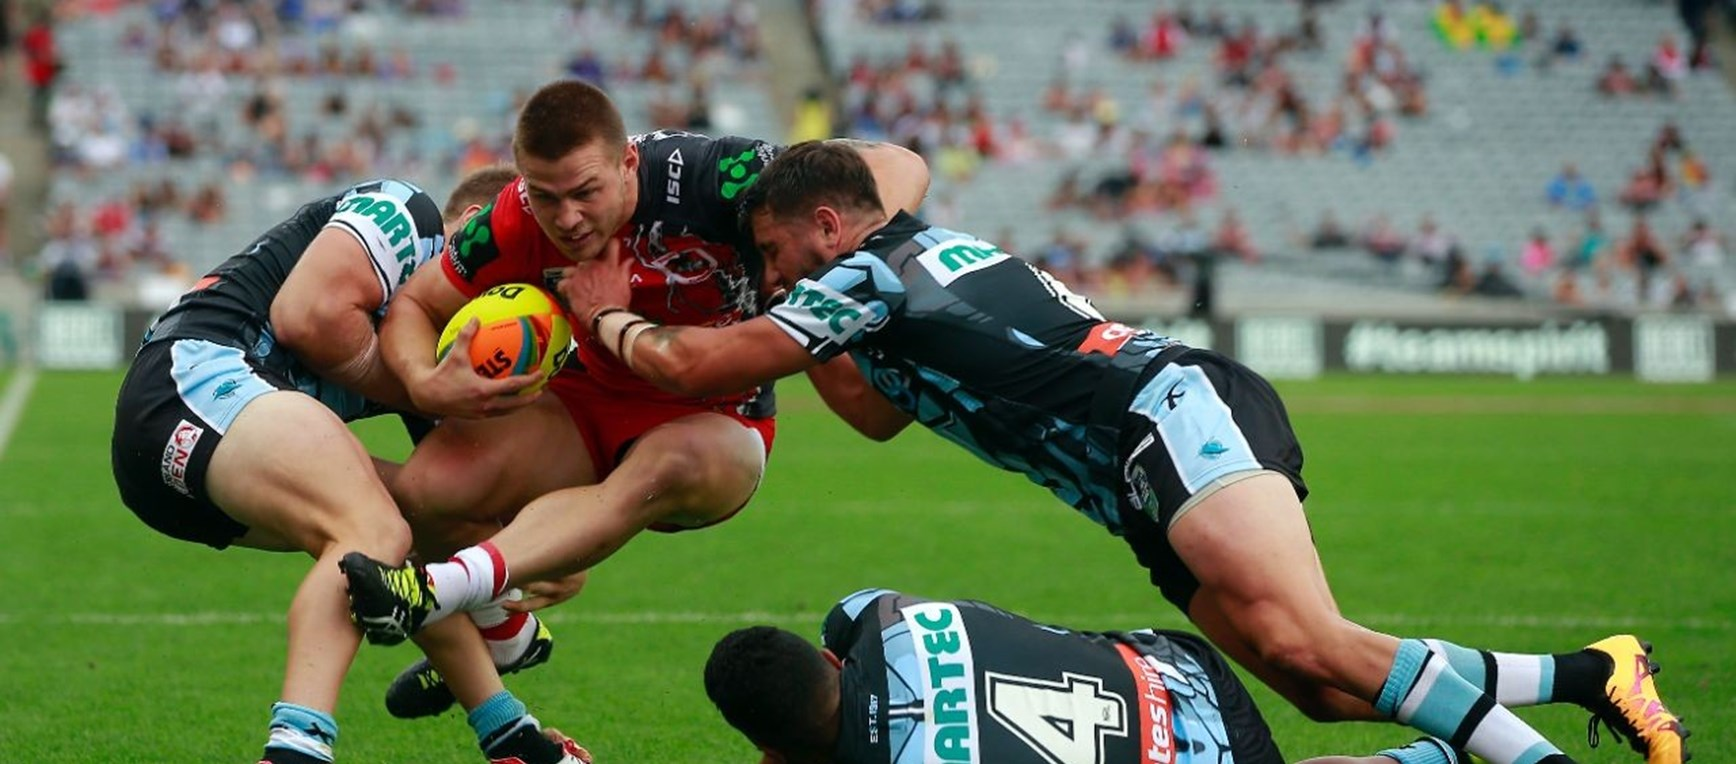 Gallery: NRL Auckland Nines Fixture 2